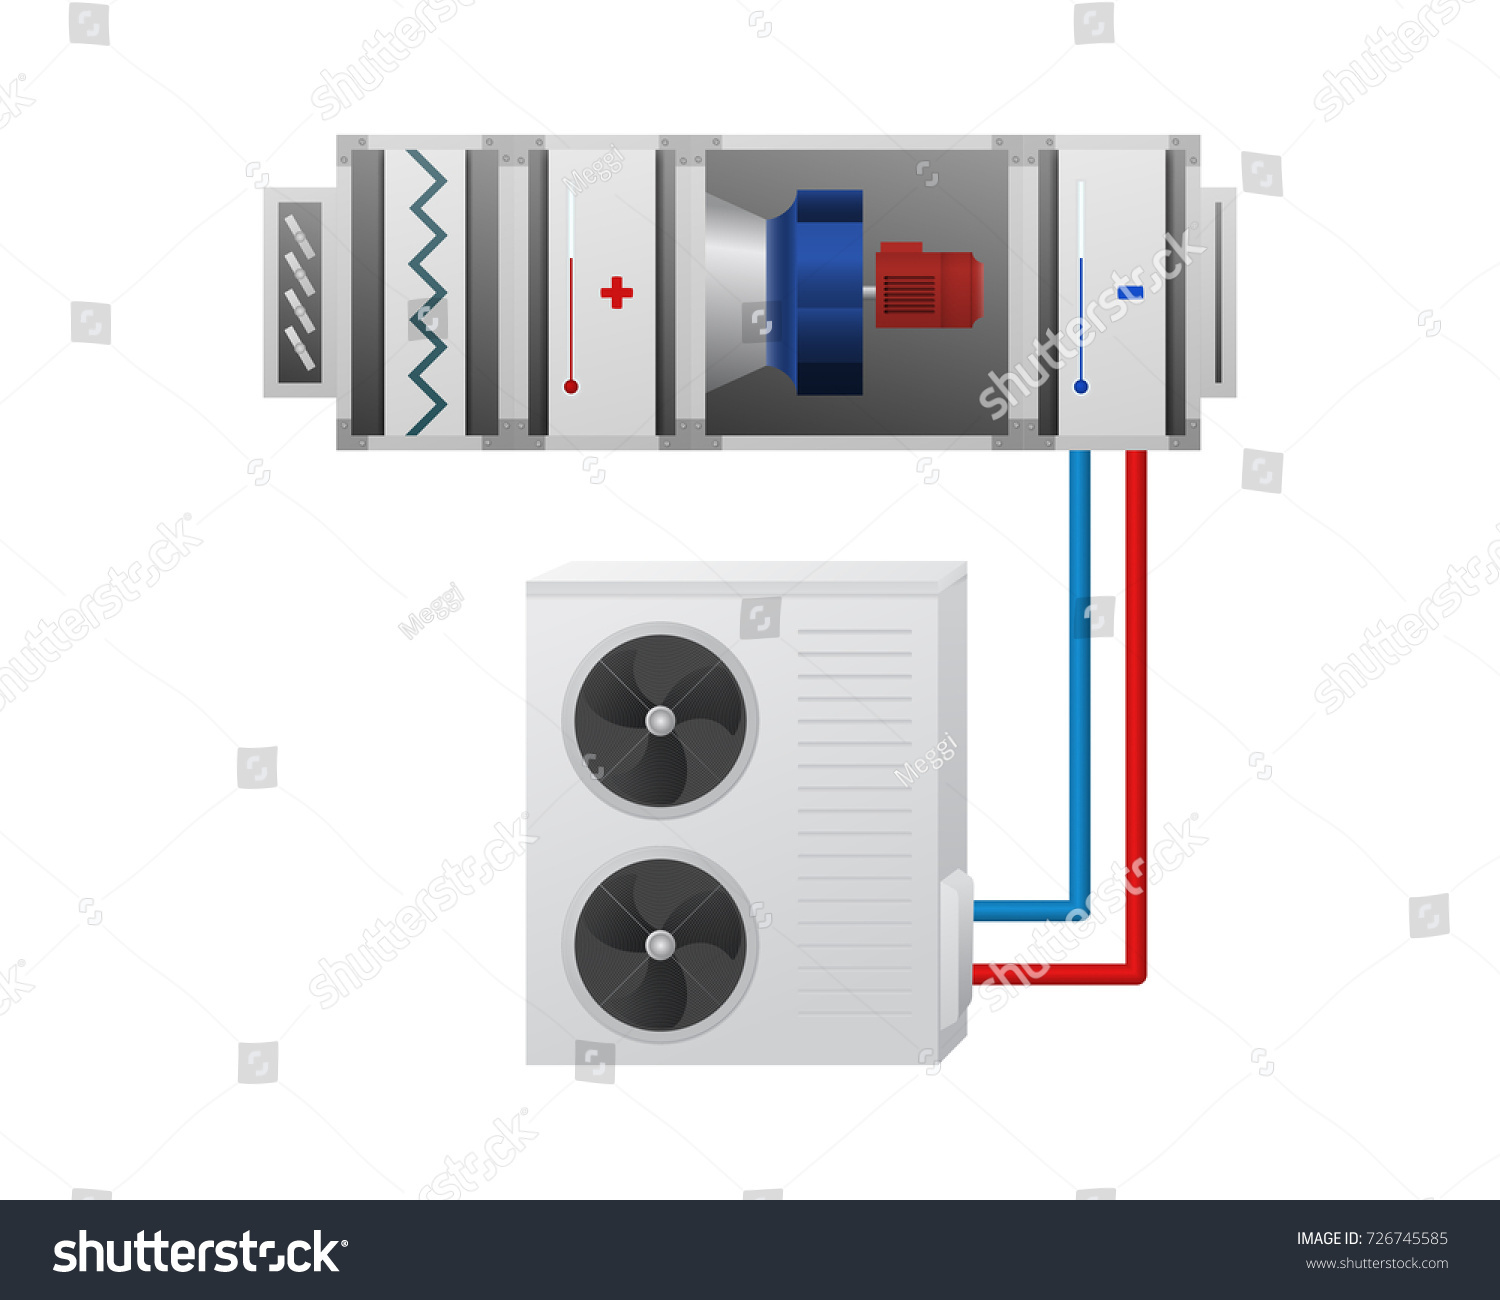 hight resolution of air handling unit with heating cooling unit recuperator and chiller vector illustration hvac